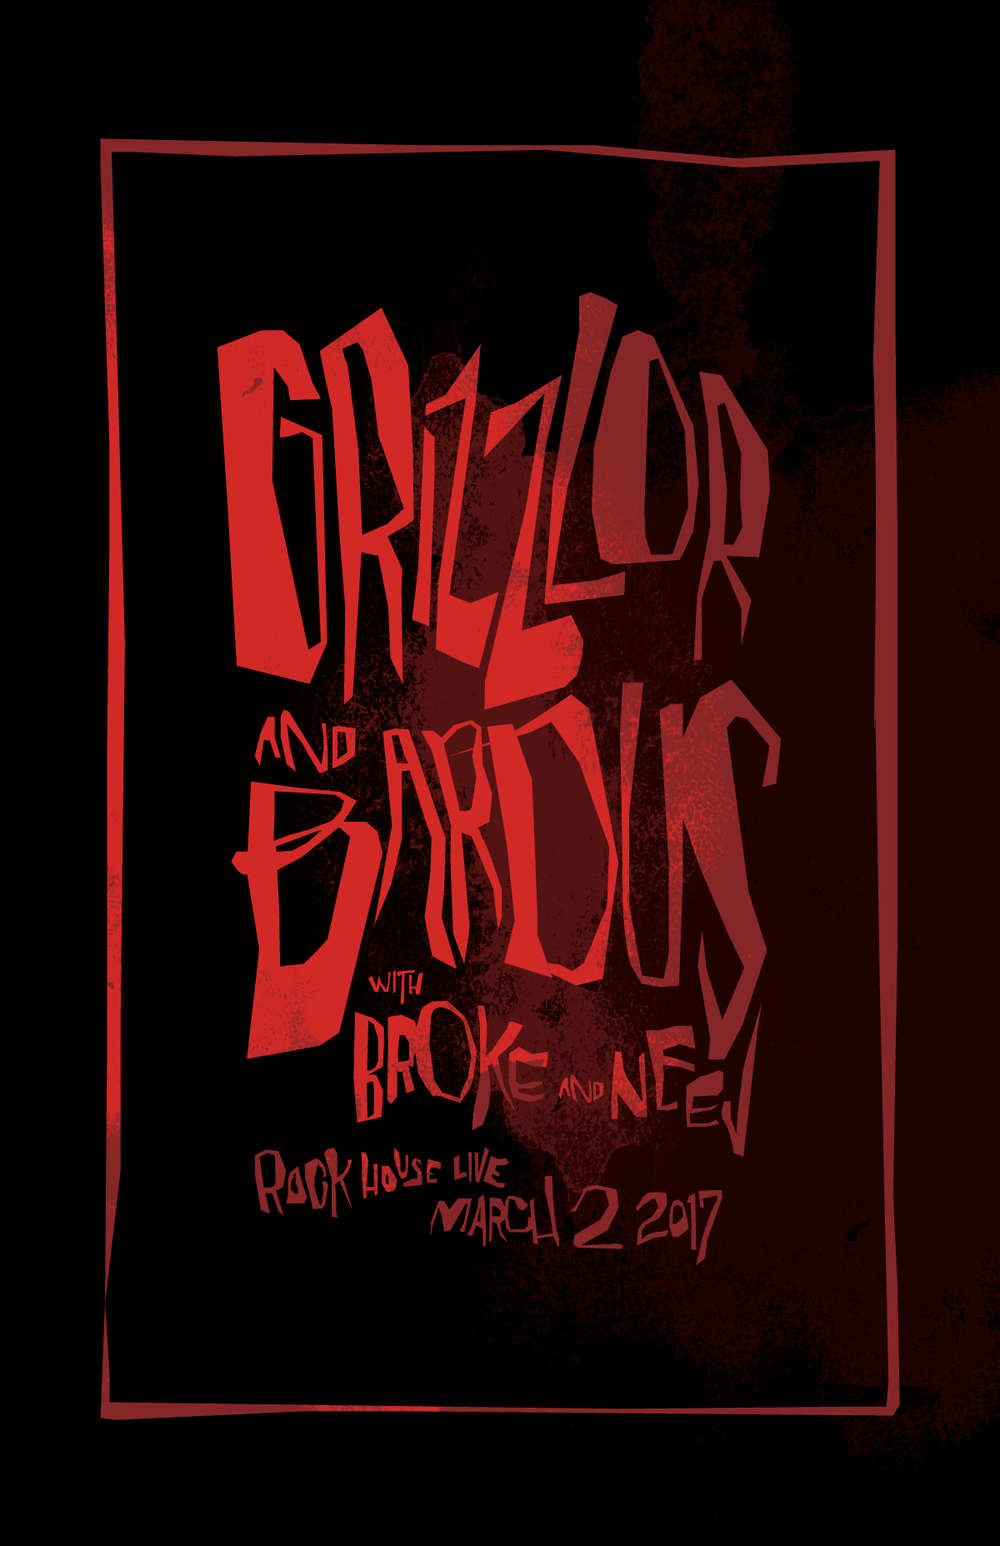 GRIZZLOR • BARDUS • BROKE